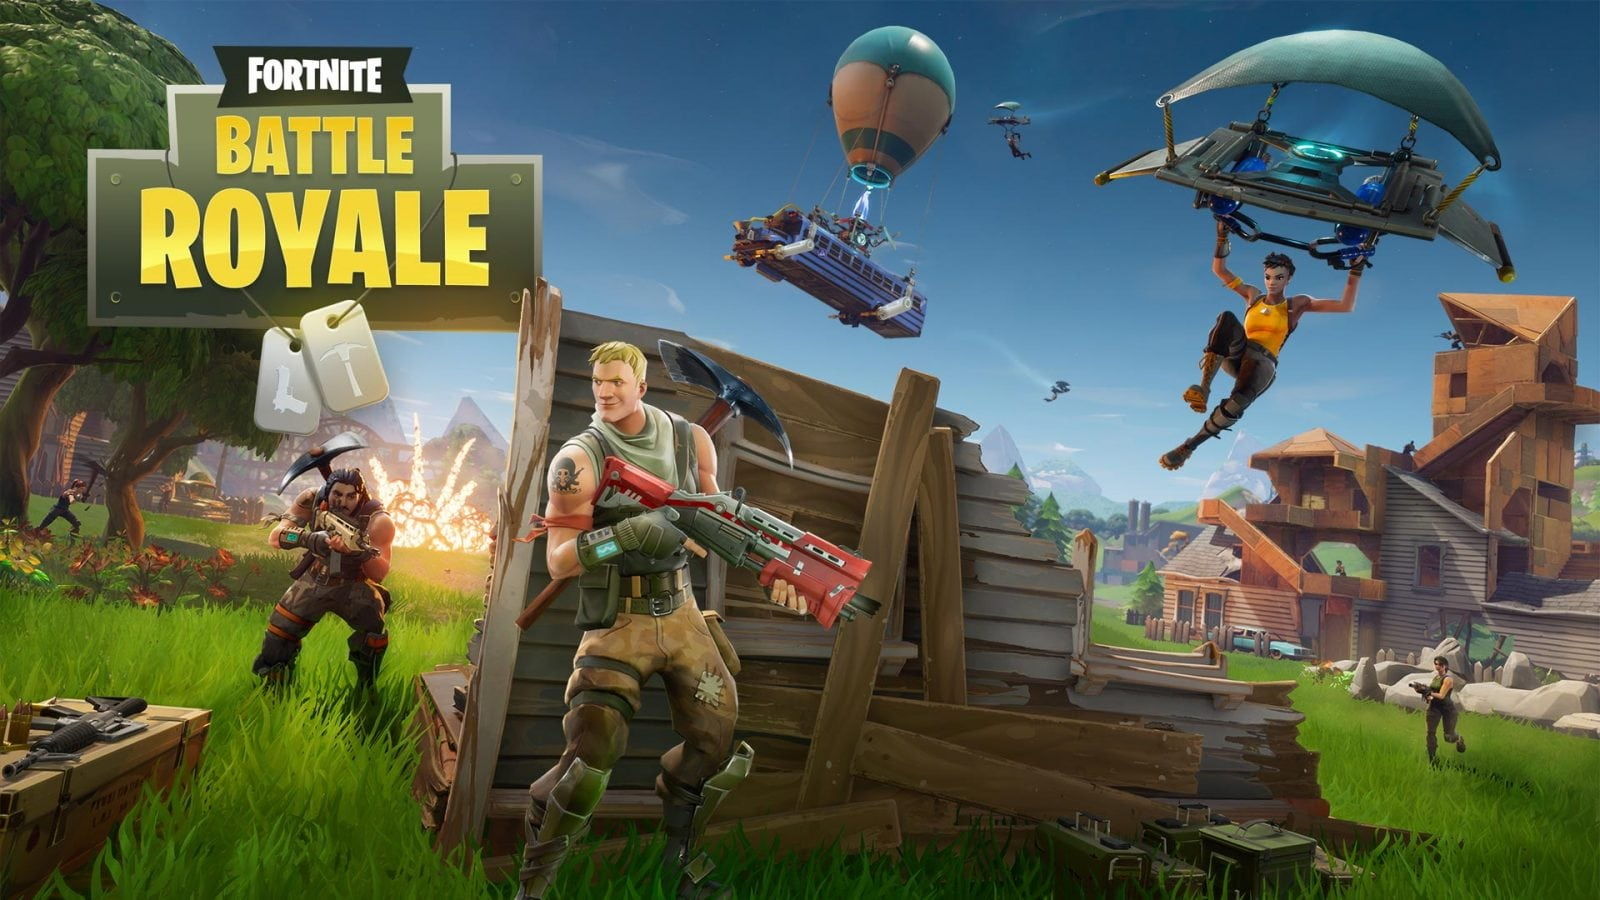 Modo Battle Royale de Fortnite gratuito